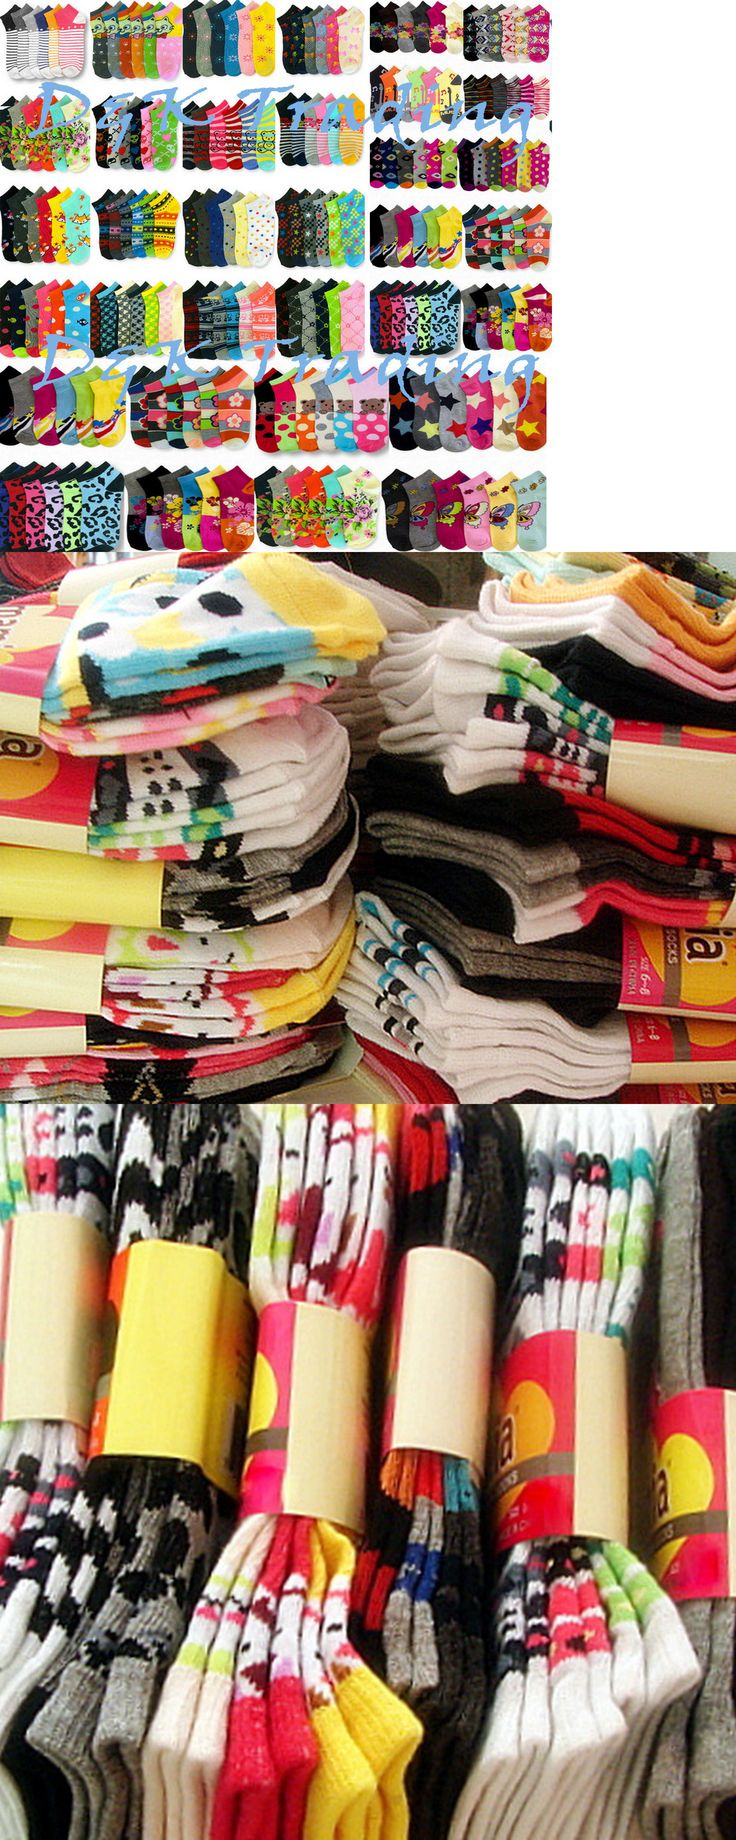 Socks 163588: Women S Girl Wholesale Socks Lot 6-8 9-11 Mixed Assorted Designs Colors Novelty -> BUY IT NOW ONLY: $34.4 on eBay!